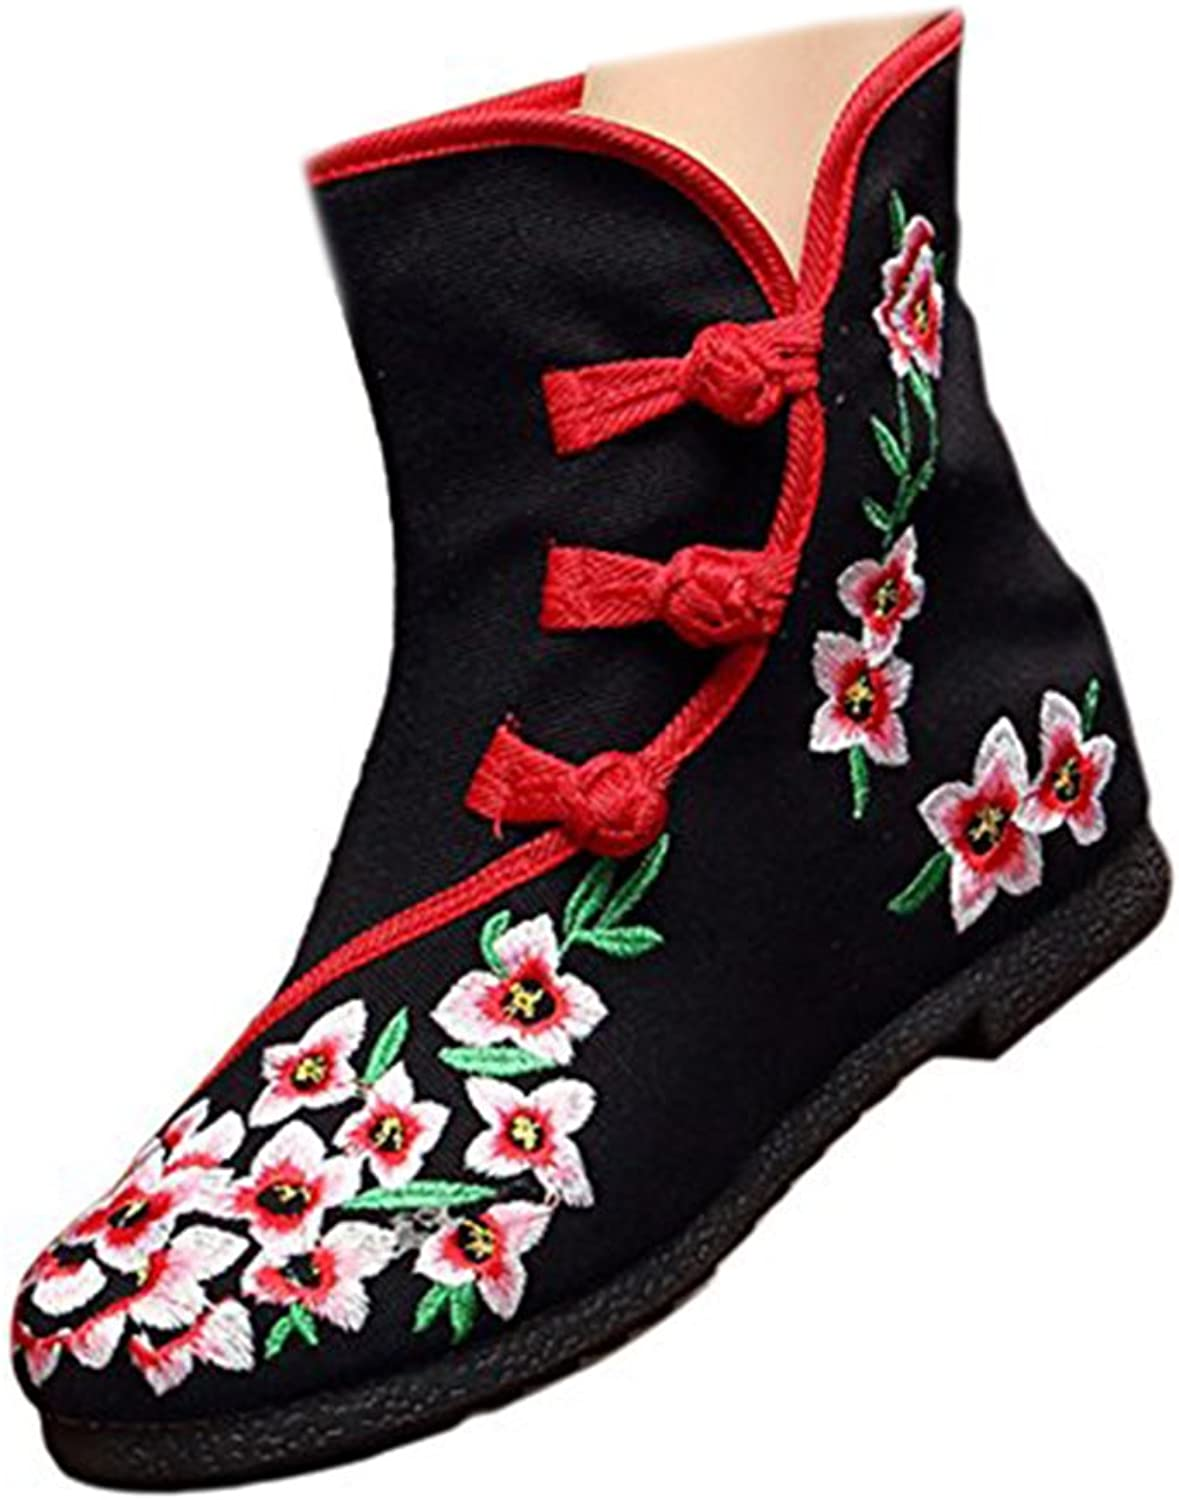 Shenghuajie Vintage Beijing Cloth shoes Embroidered Boots 12-02 Black